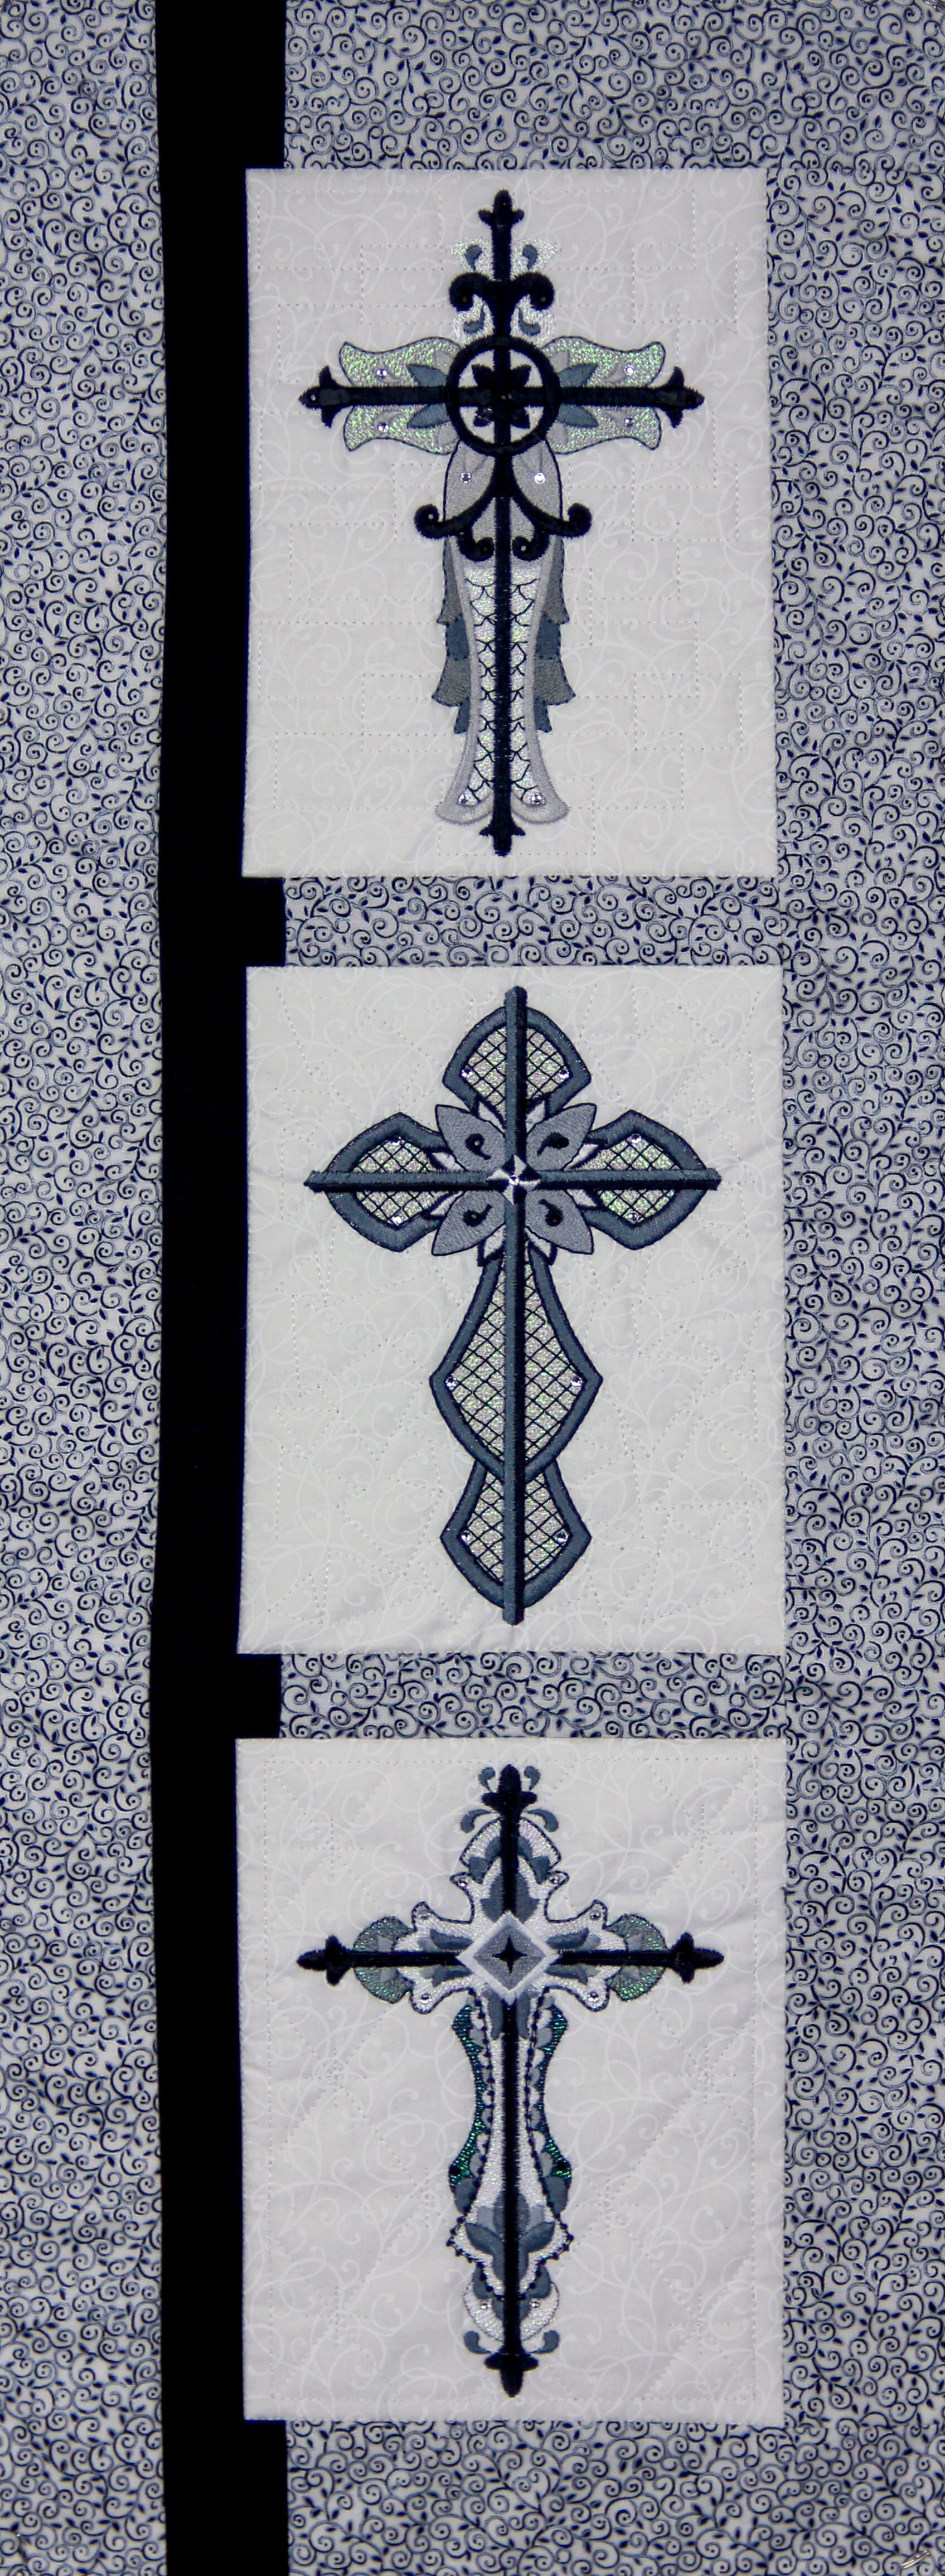 Quilting Motif behind design, Cross designs not included.